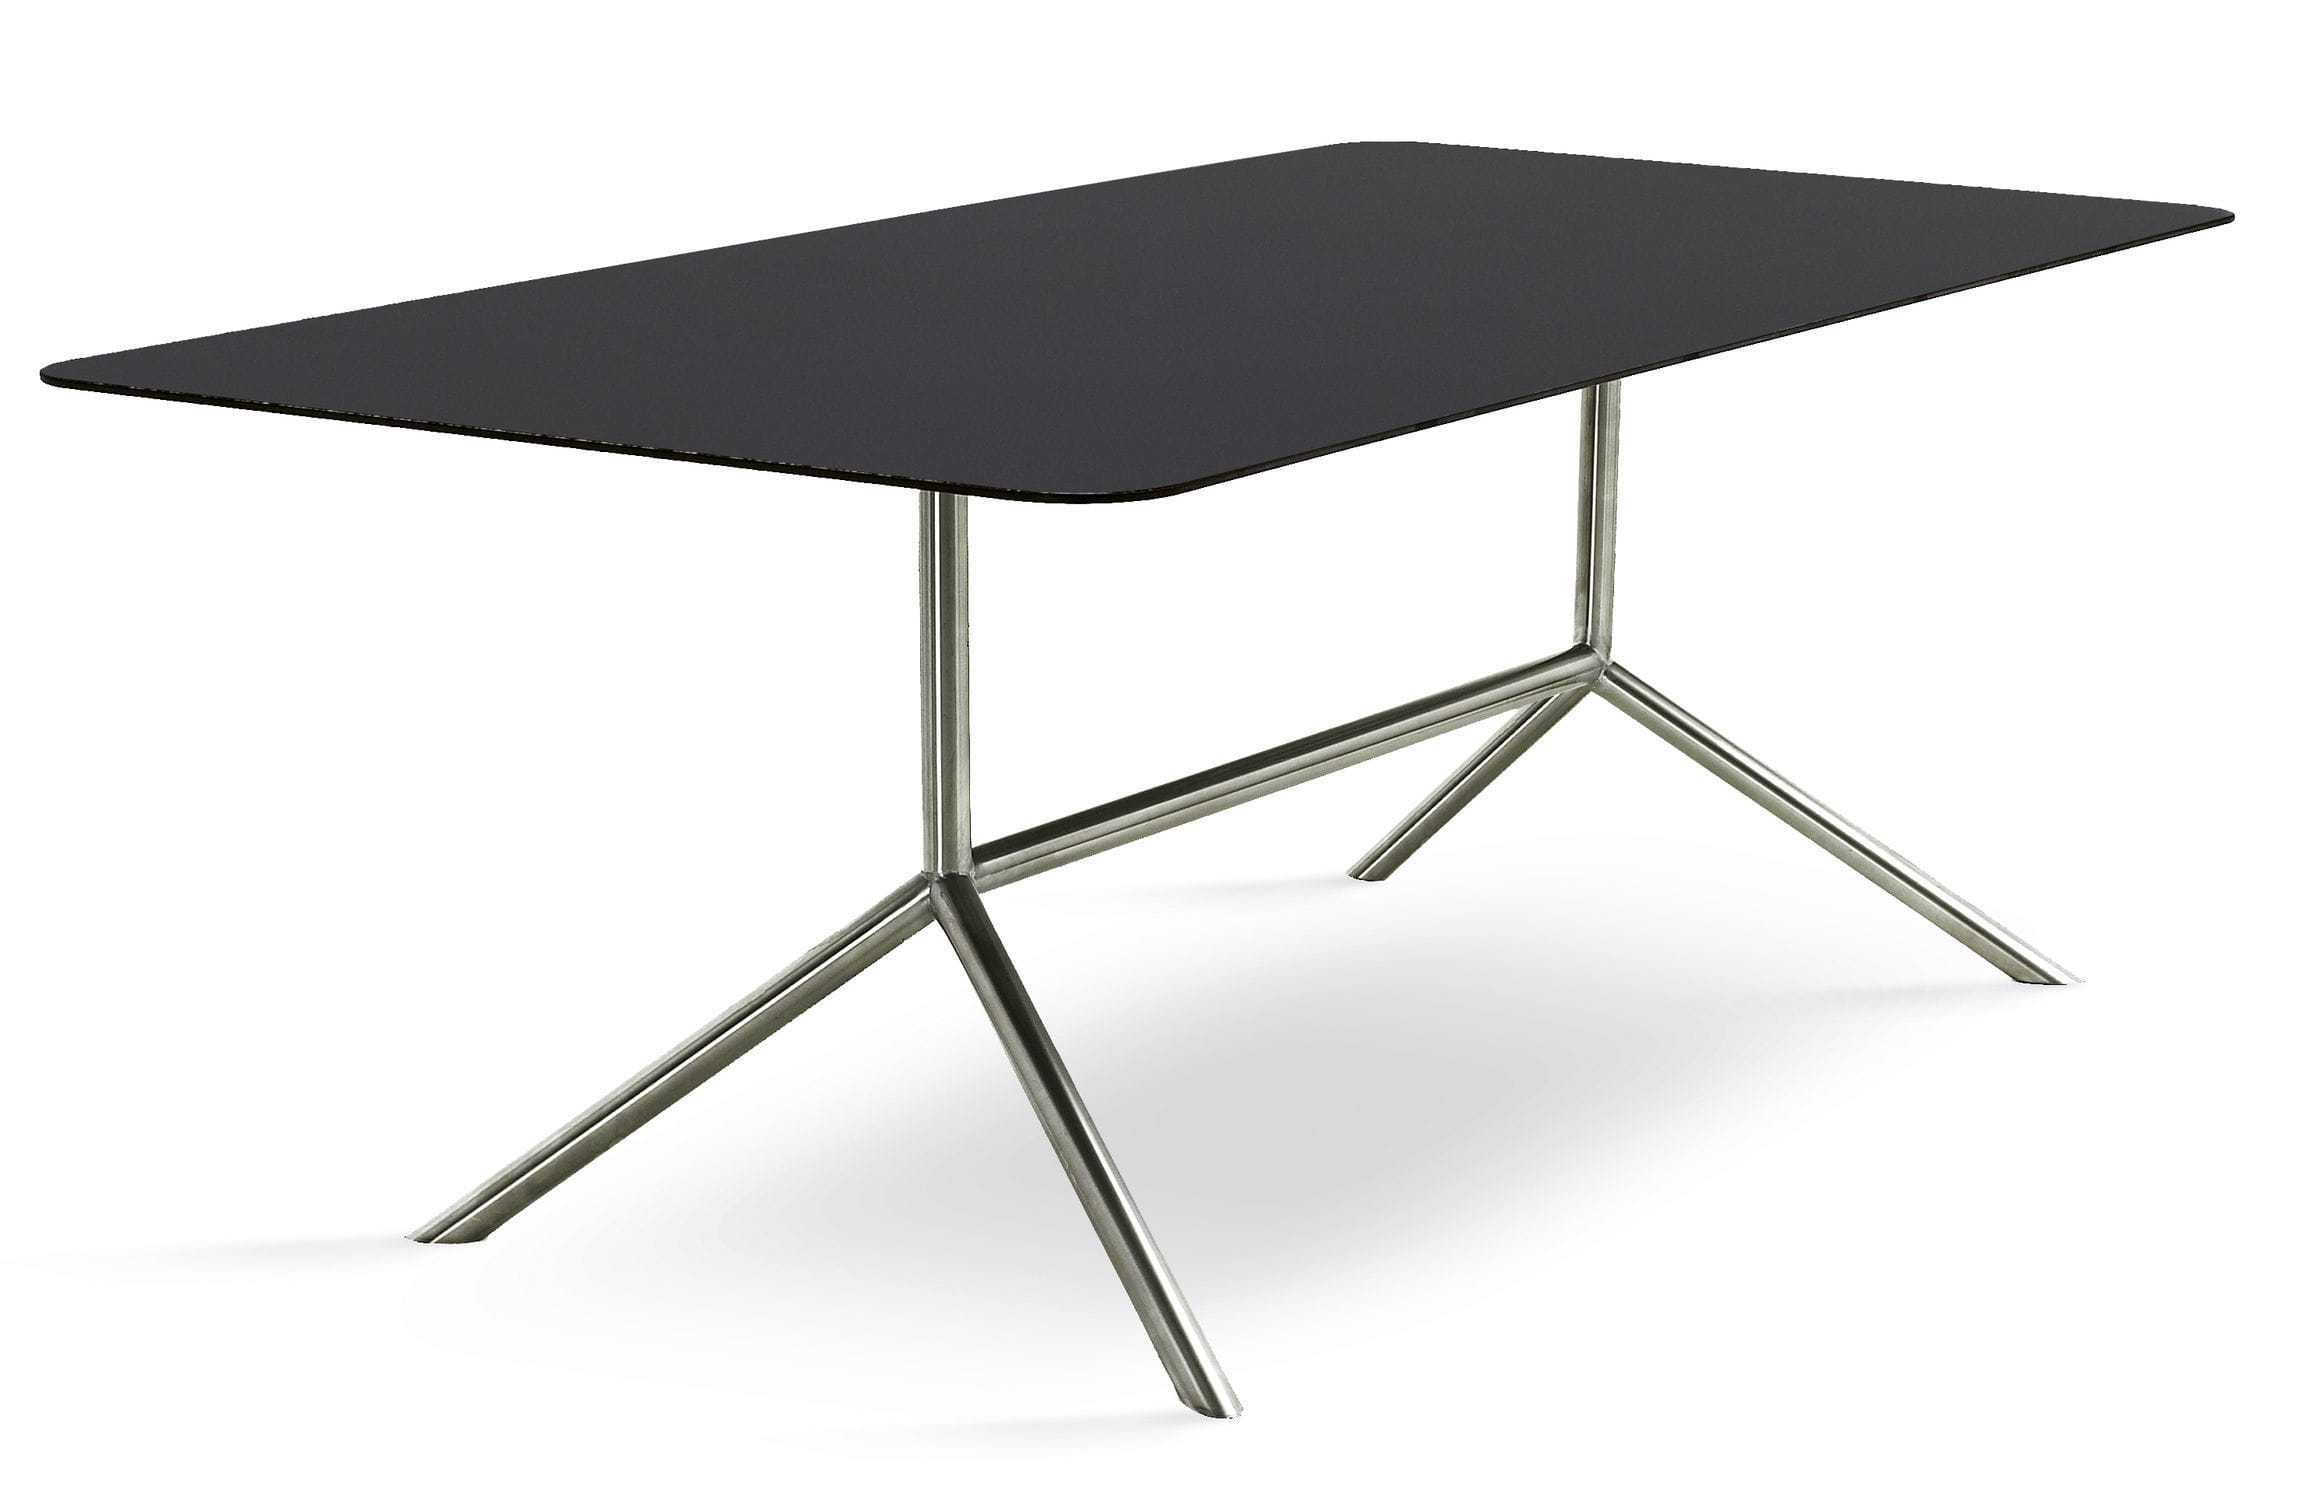 Stainless steel dining table -  Contemporary Dining Table Glass Stainless Steel Rectangular Shell Dinning 100